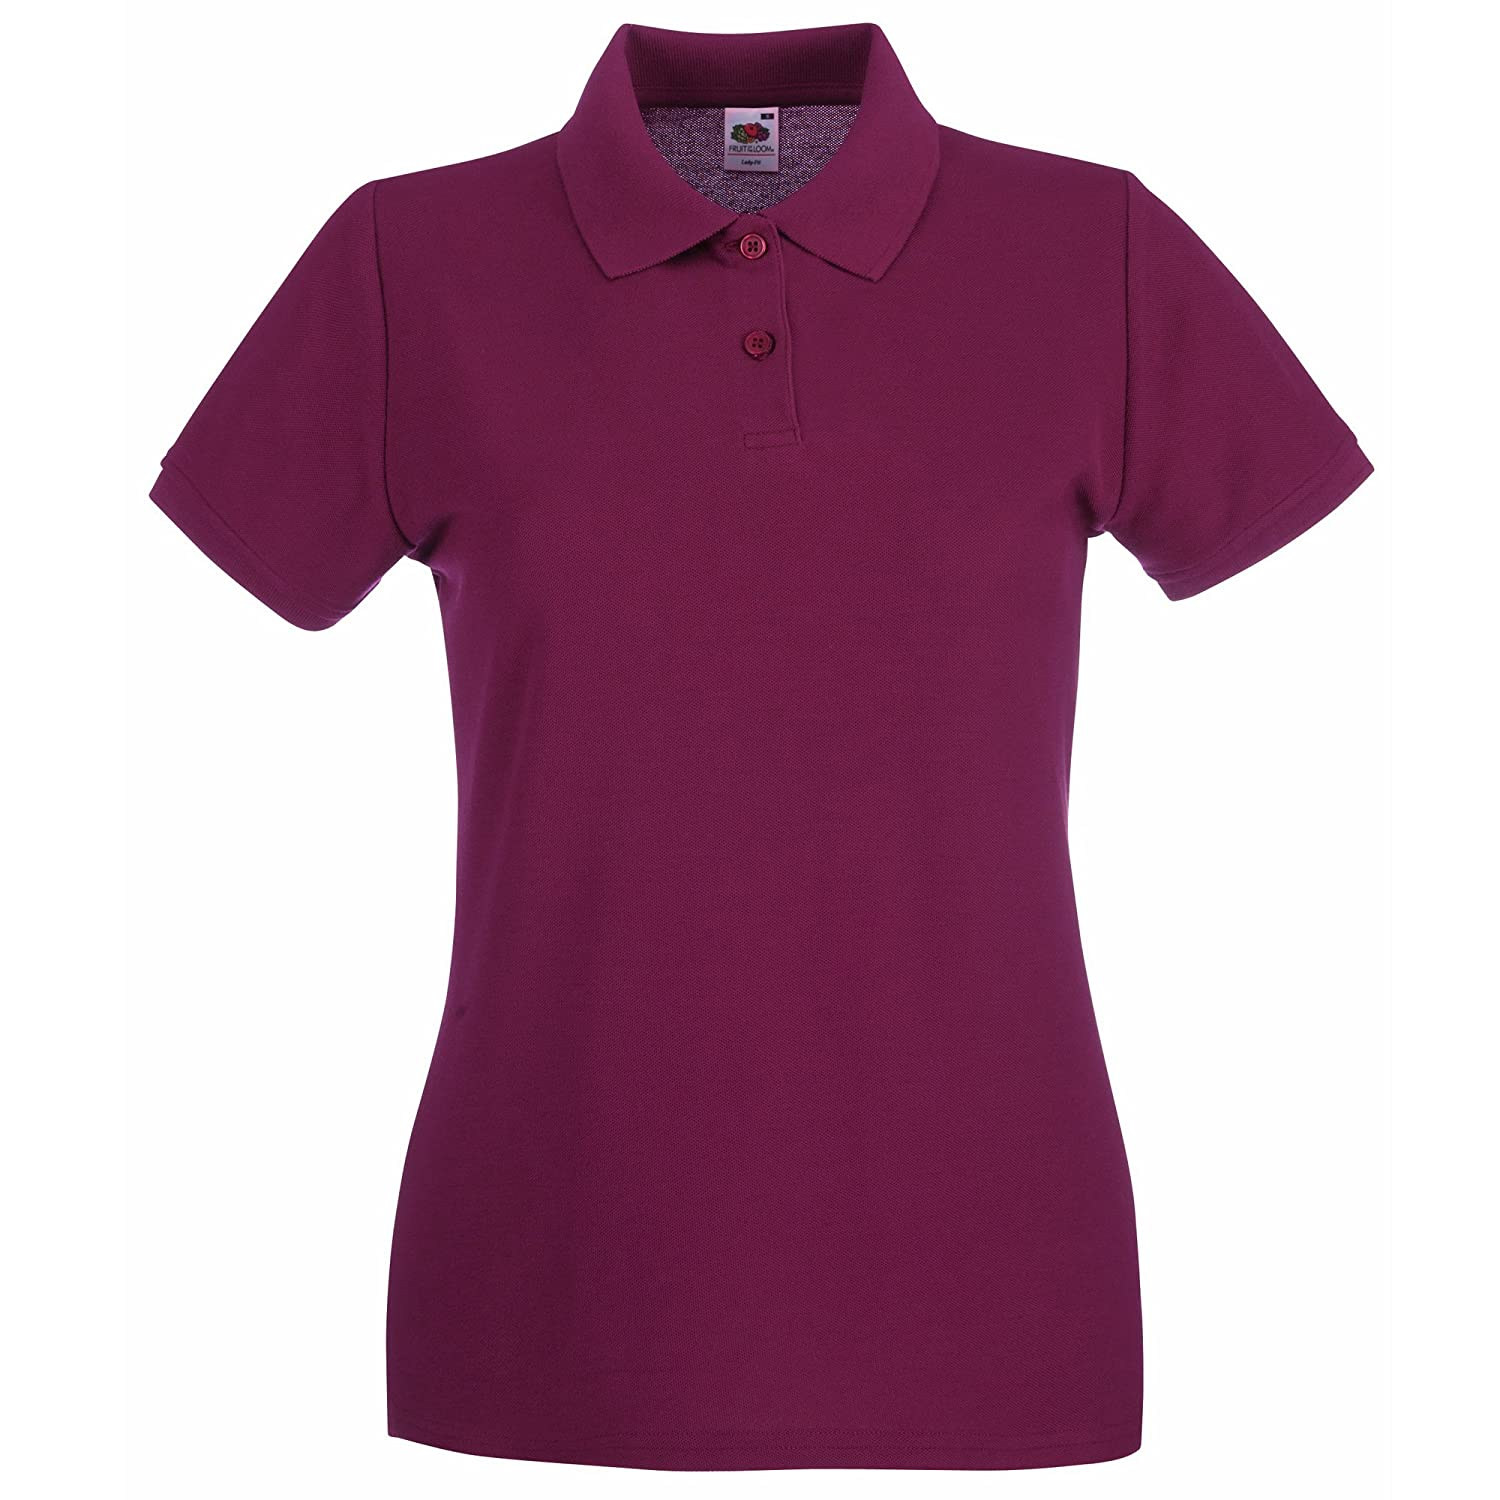 TALLA M. Fruit of the Loom Premium Lady-Fit, Polo para Mujer